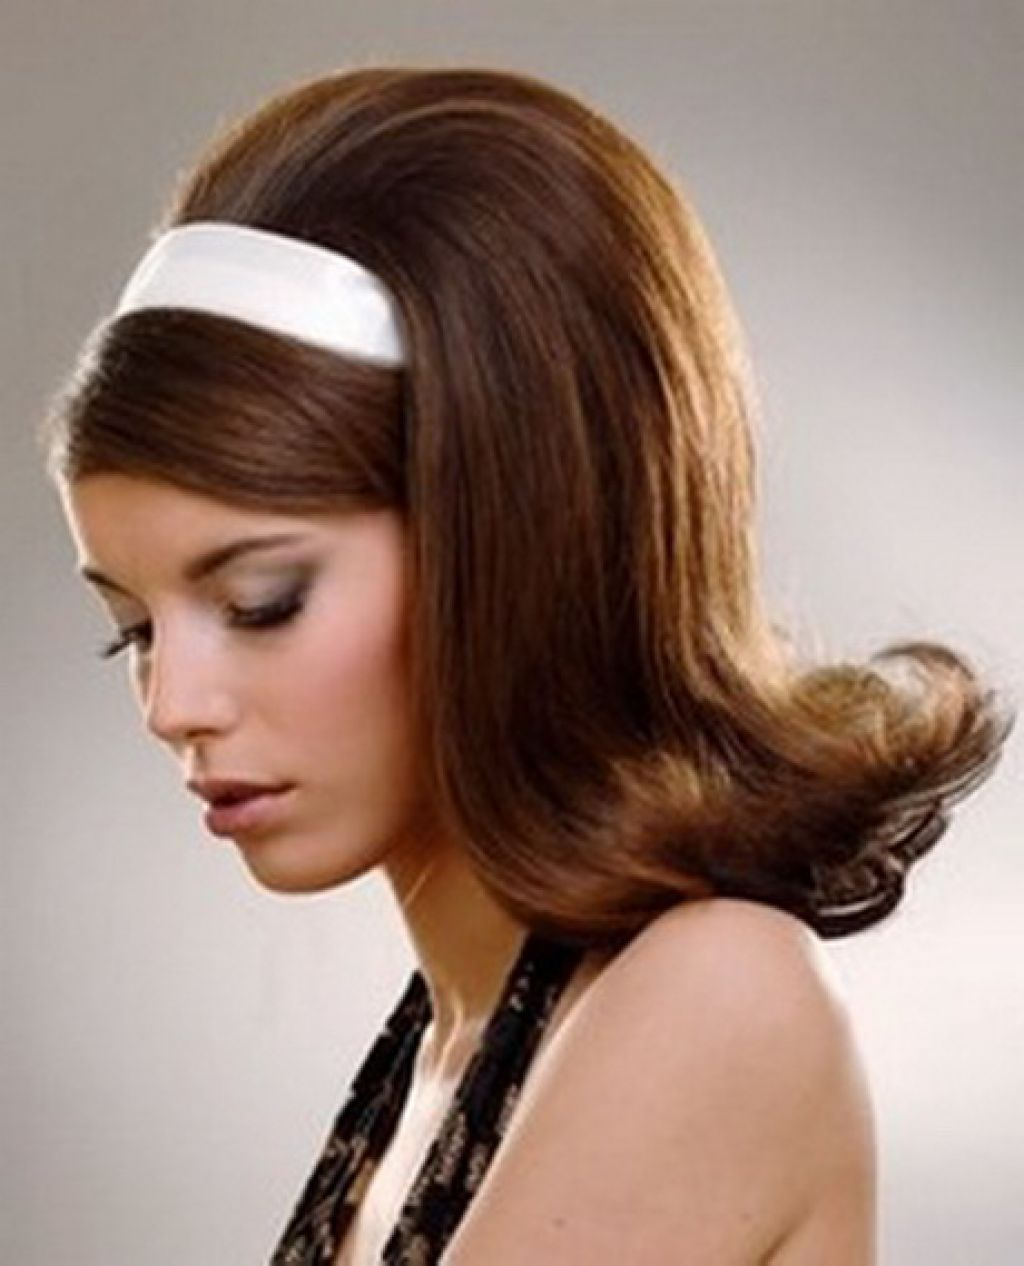 Fifties Hairstyles For Long Hair New Hairstyles 50s Hairstyles Hair Styles Long Hair Styles